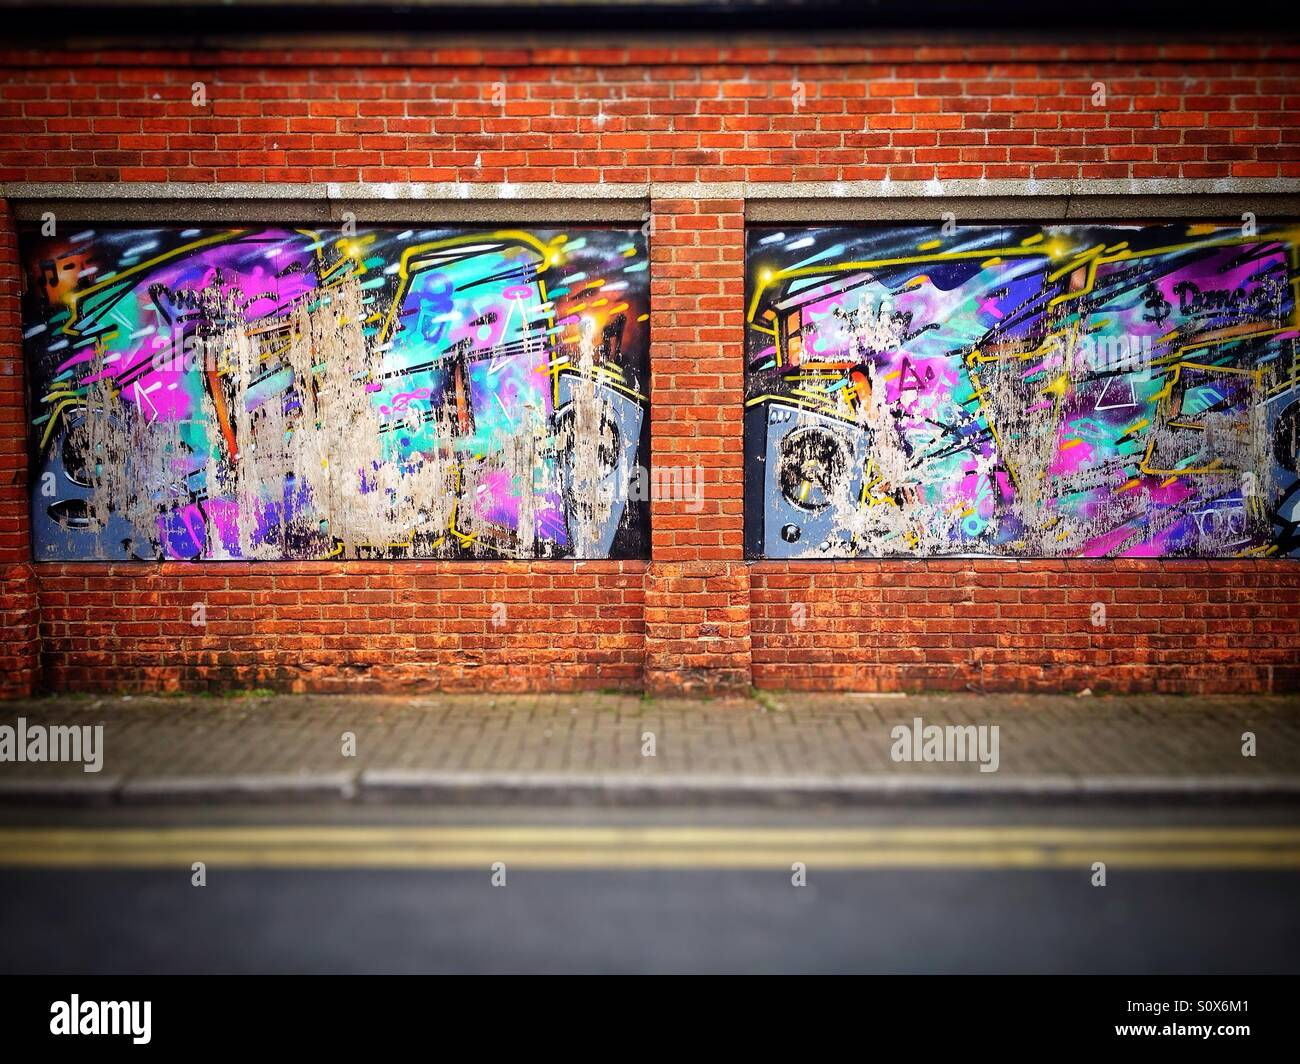 Street art in High Wycombe - Stock Image